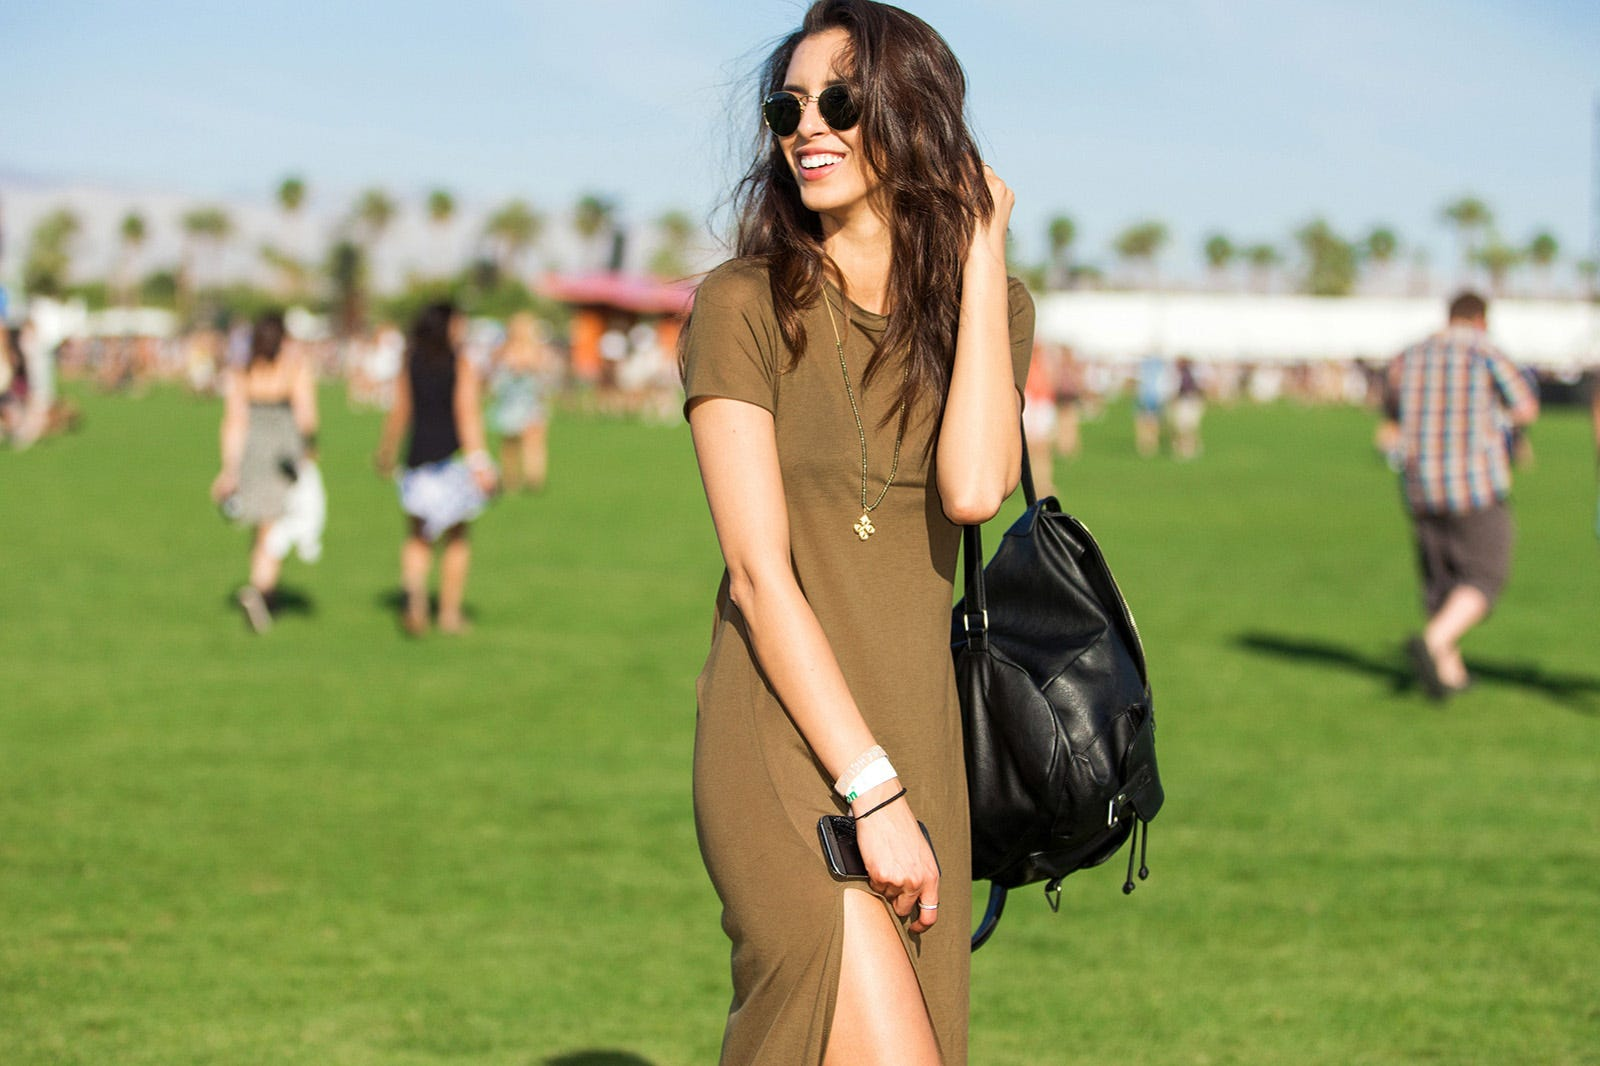 http://www.refinery29.com/2015/04/85205/coachella-2015-street-style-pictures?utm_source=email&utm_medium=editorial&utm_content=everywhere&utm_campaign=150413-coachella-2015-street-style-pictures#slide-17